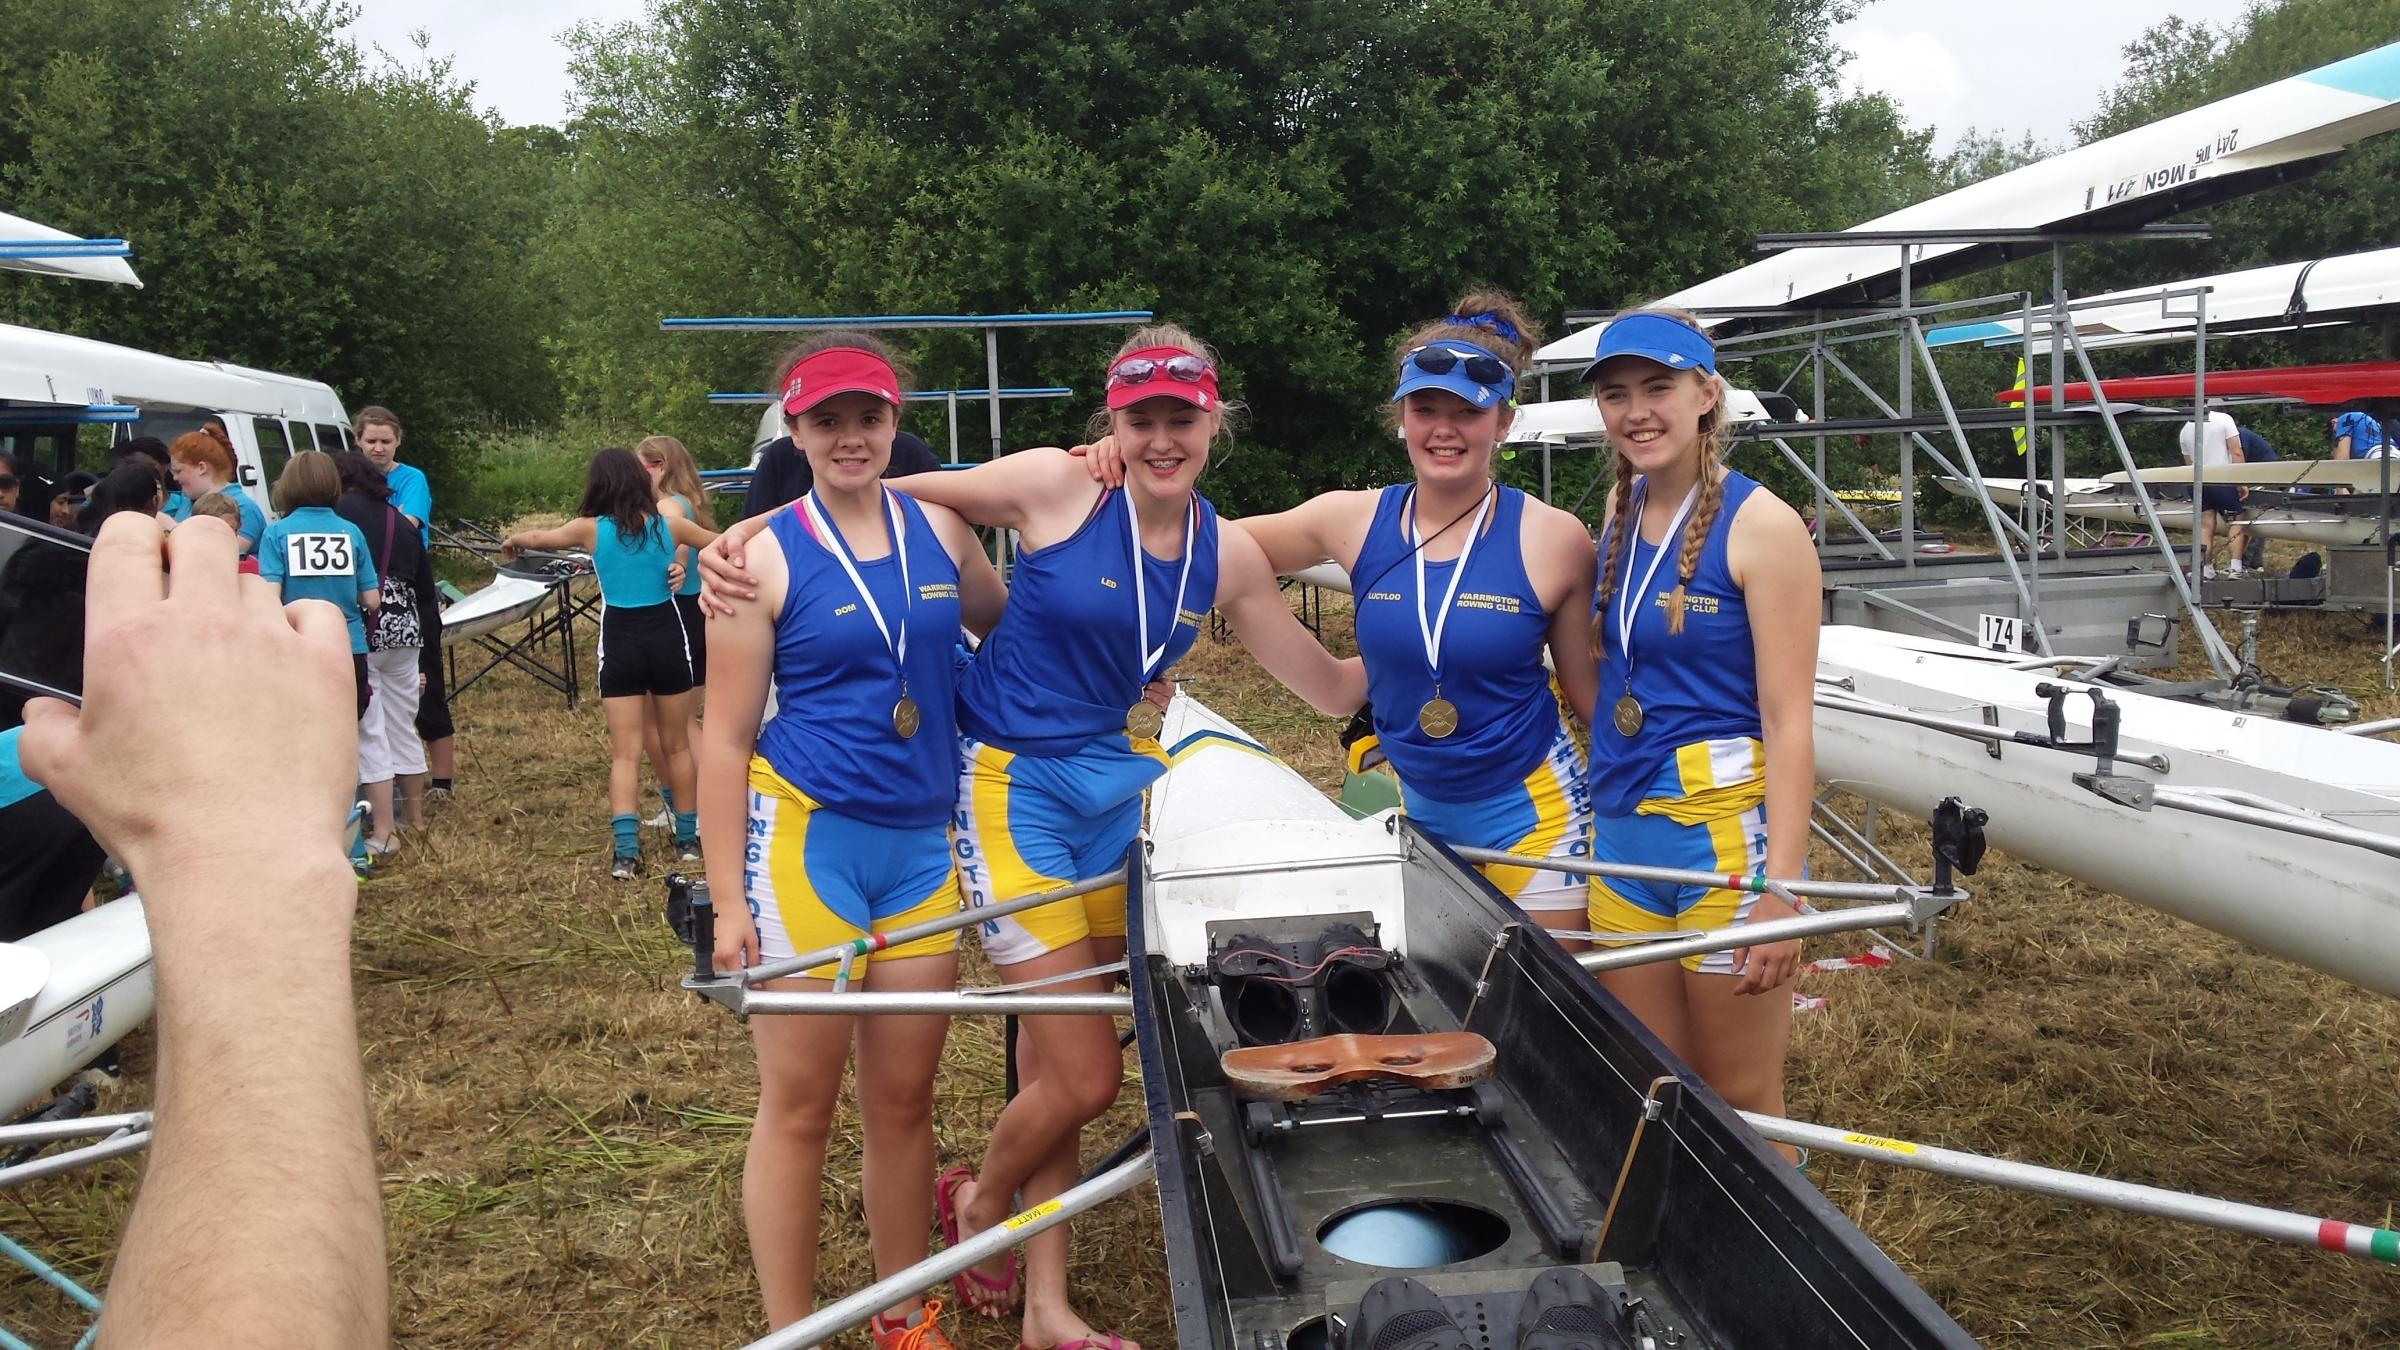 Rowers bring home the gold